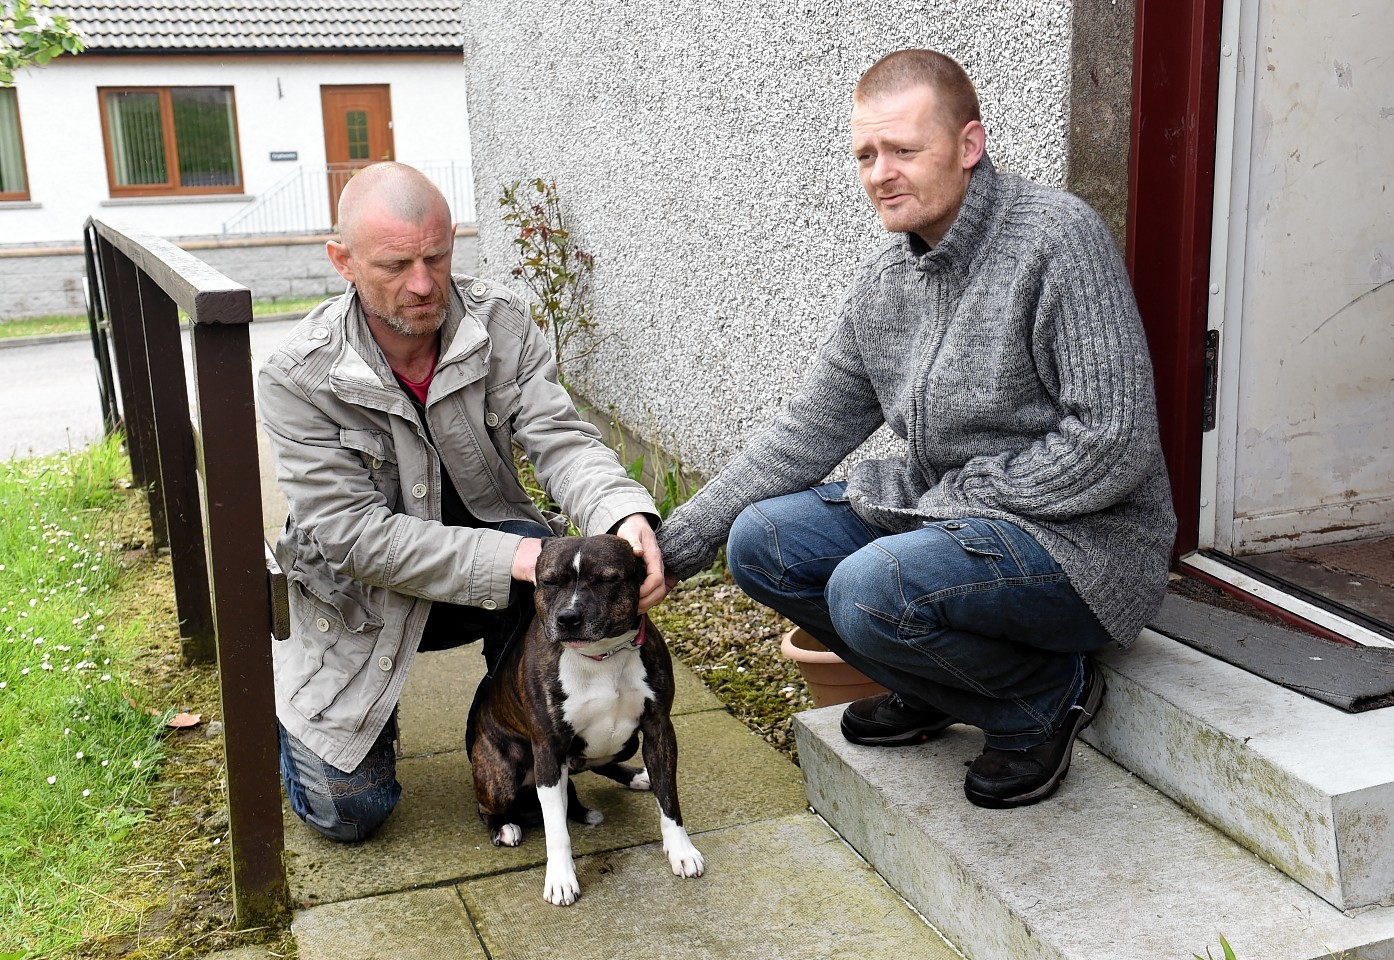 Pictured, from left, Alexander Bain and Brian Cowie with the rescued dog Levi.